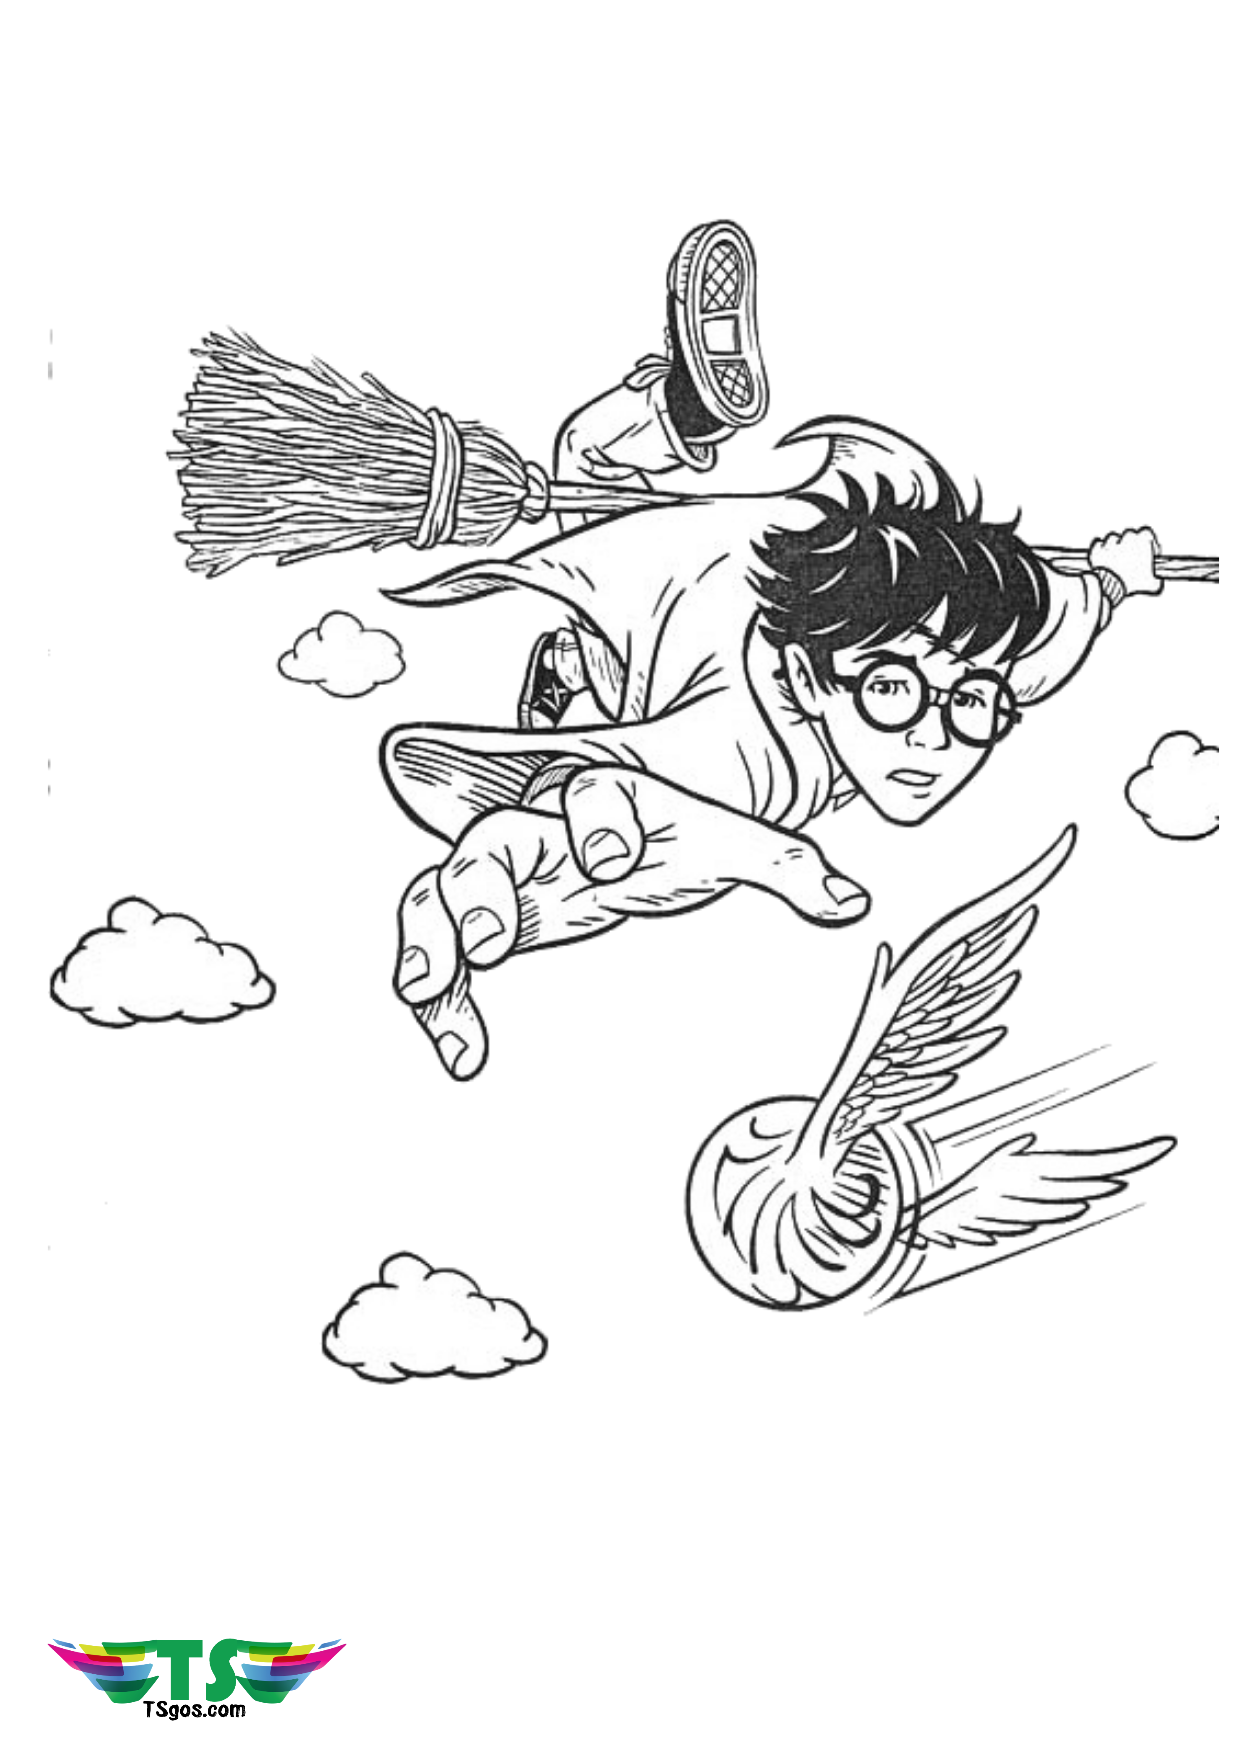 Harry Potter riding broom Nimbus and chasing Quidditch coloring